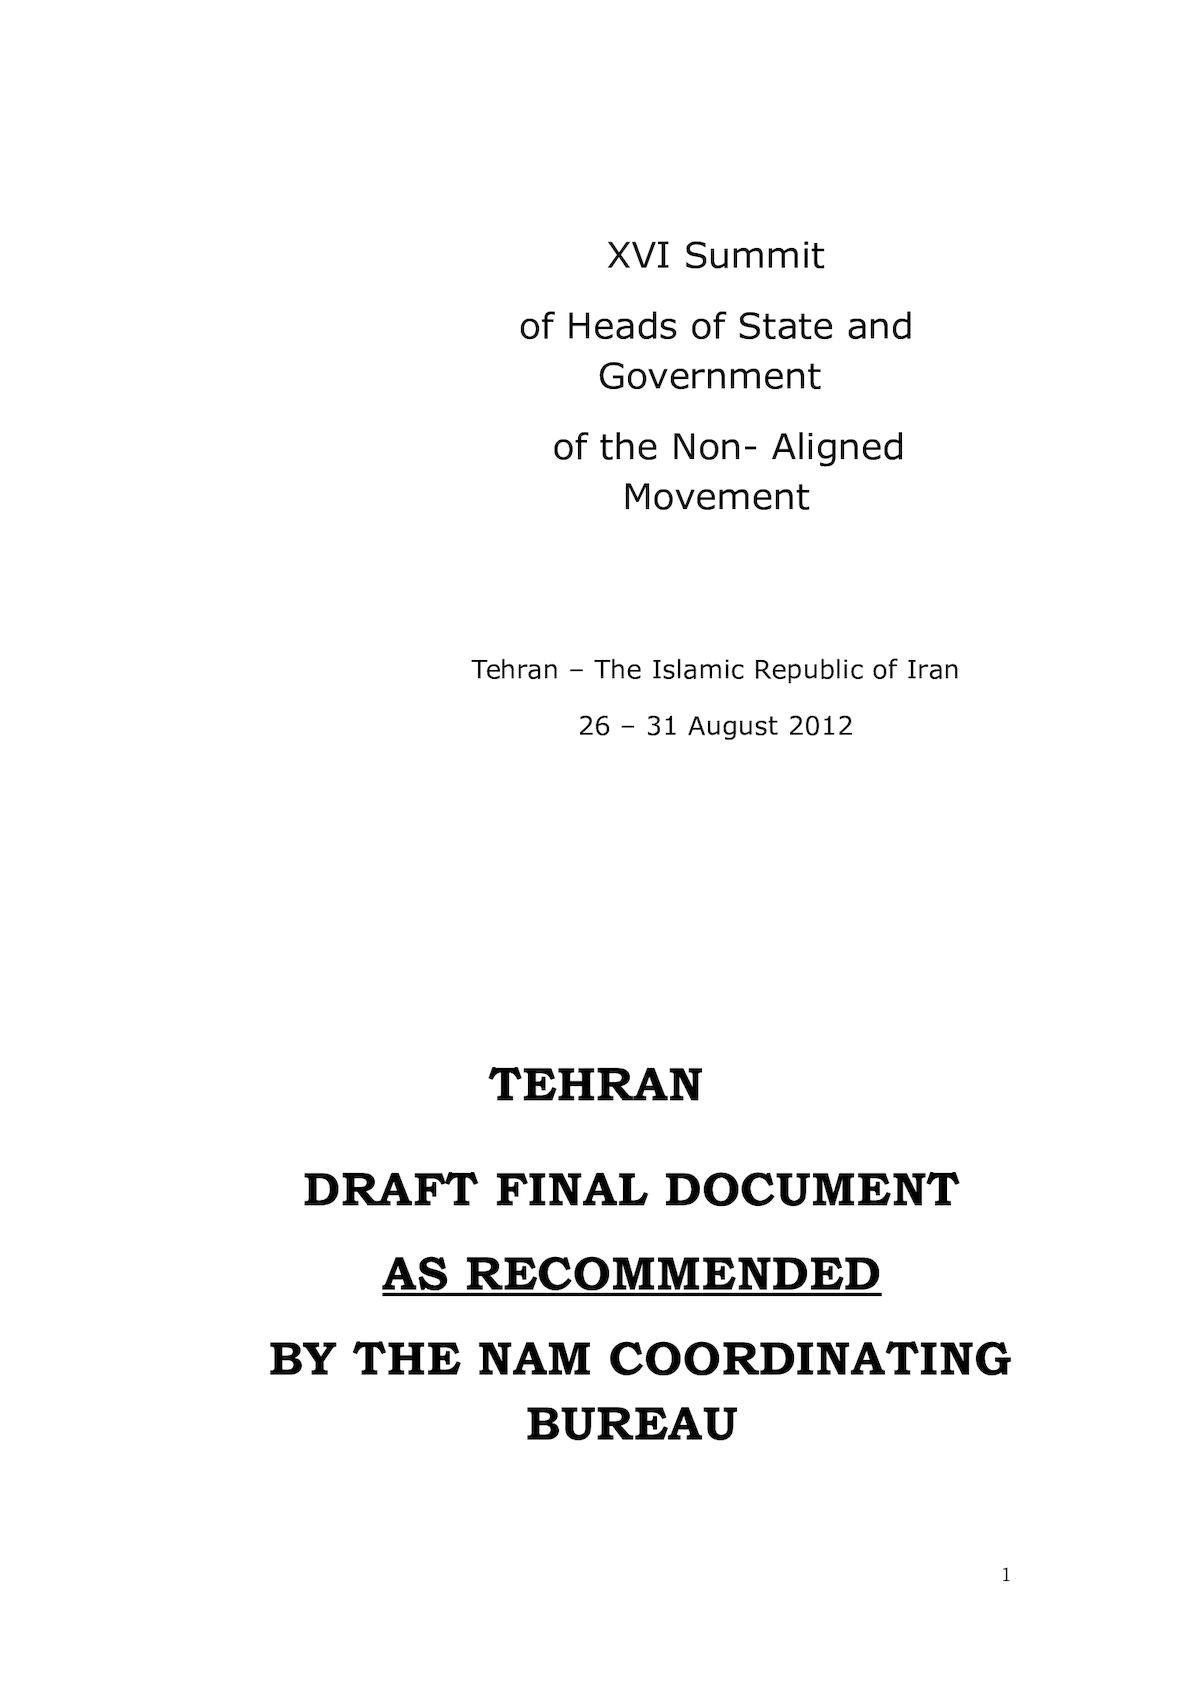 TEHRAN DRAFT FINAL DOCUMENT- As Recommended By The NAM Co B